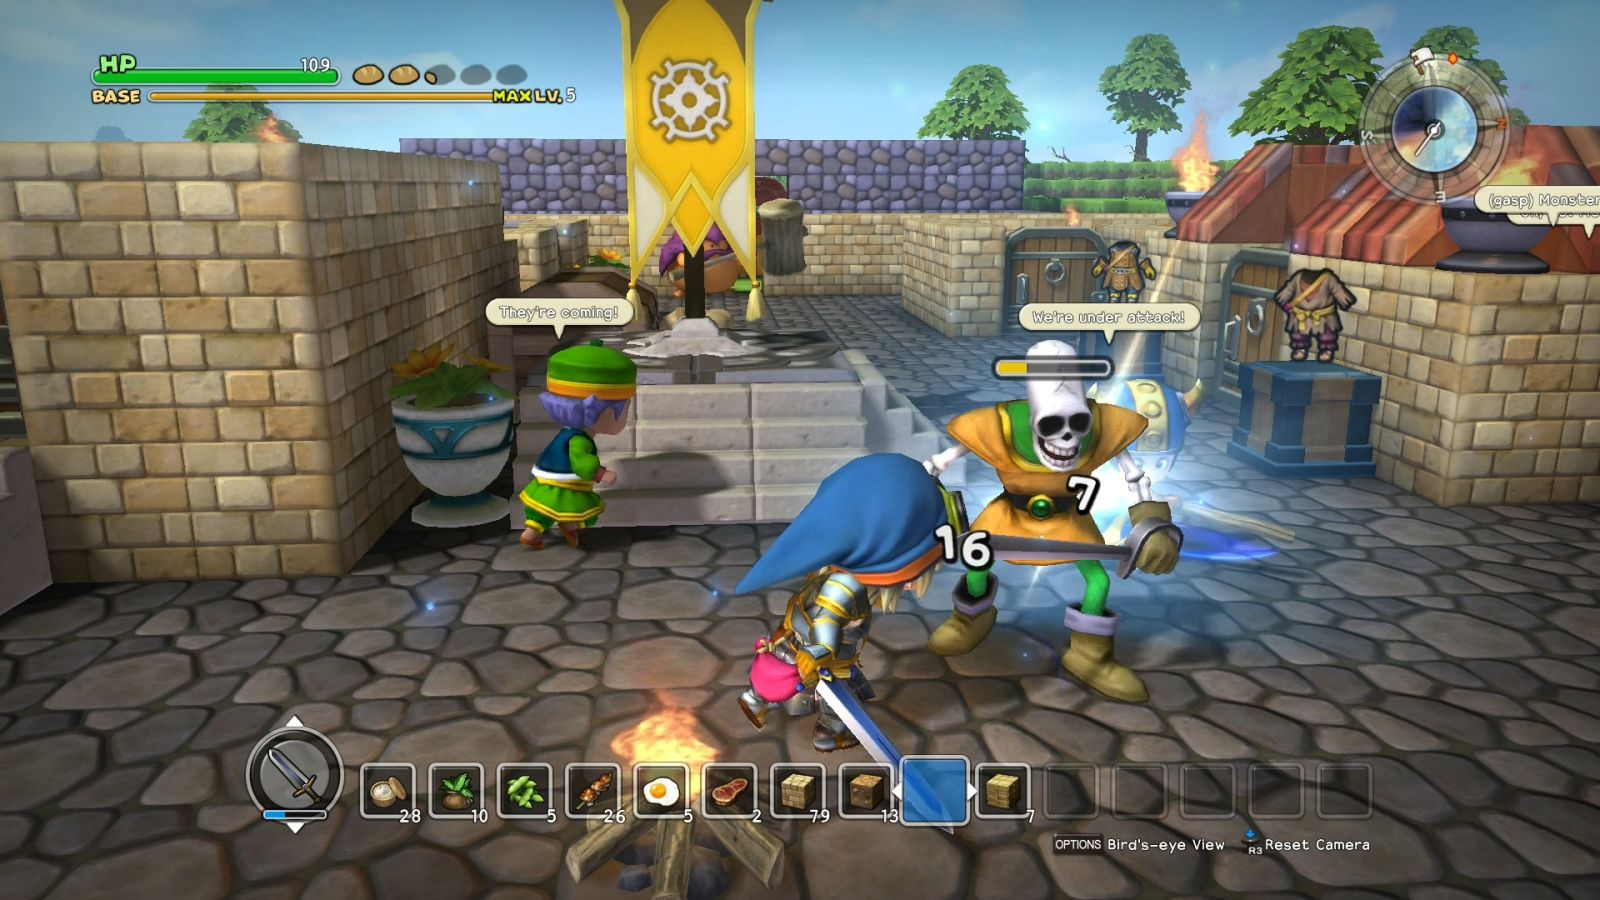 DRAGON QUEST Builders gets free DLC